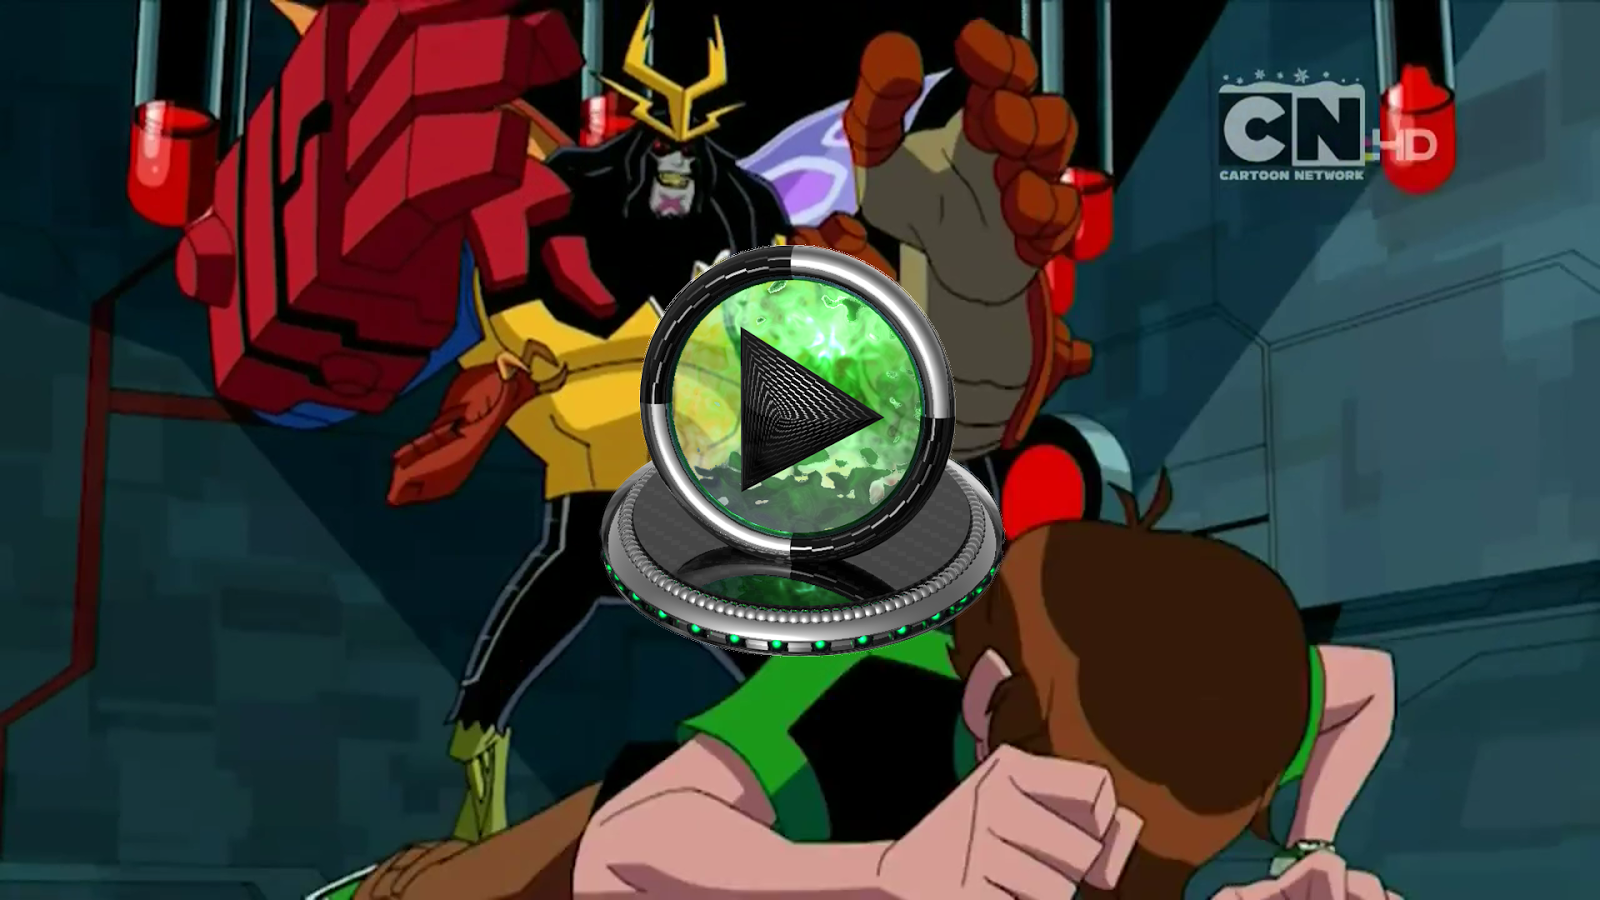 http://theultimatevideos.blogspot.com/2014/12/ben-10-omniverse-weapon-xi-and-marathon.html